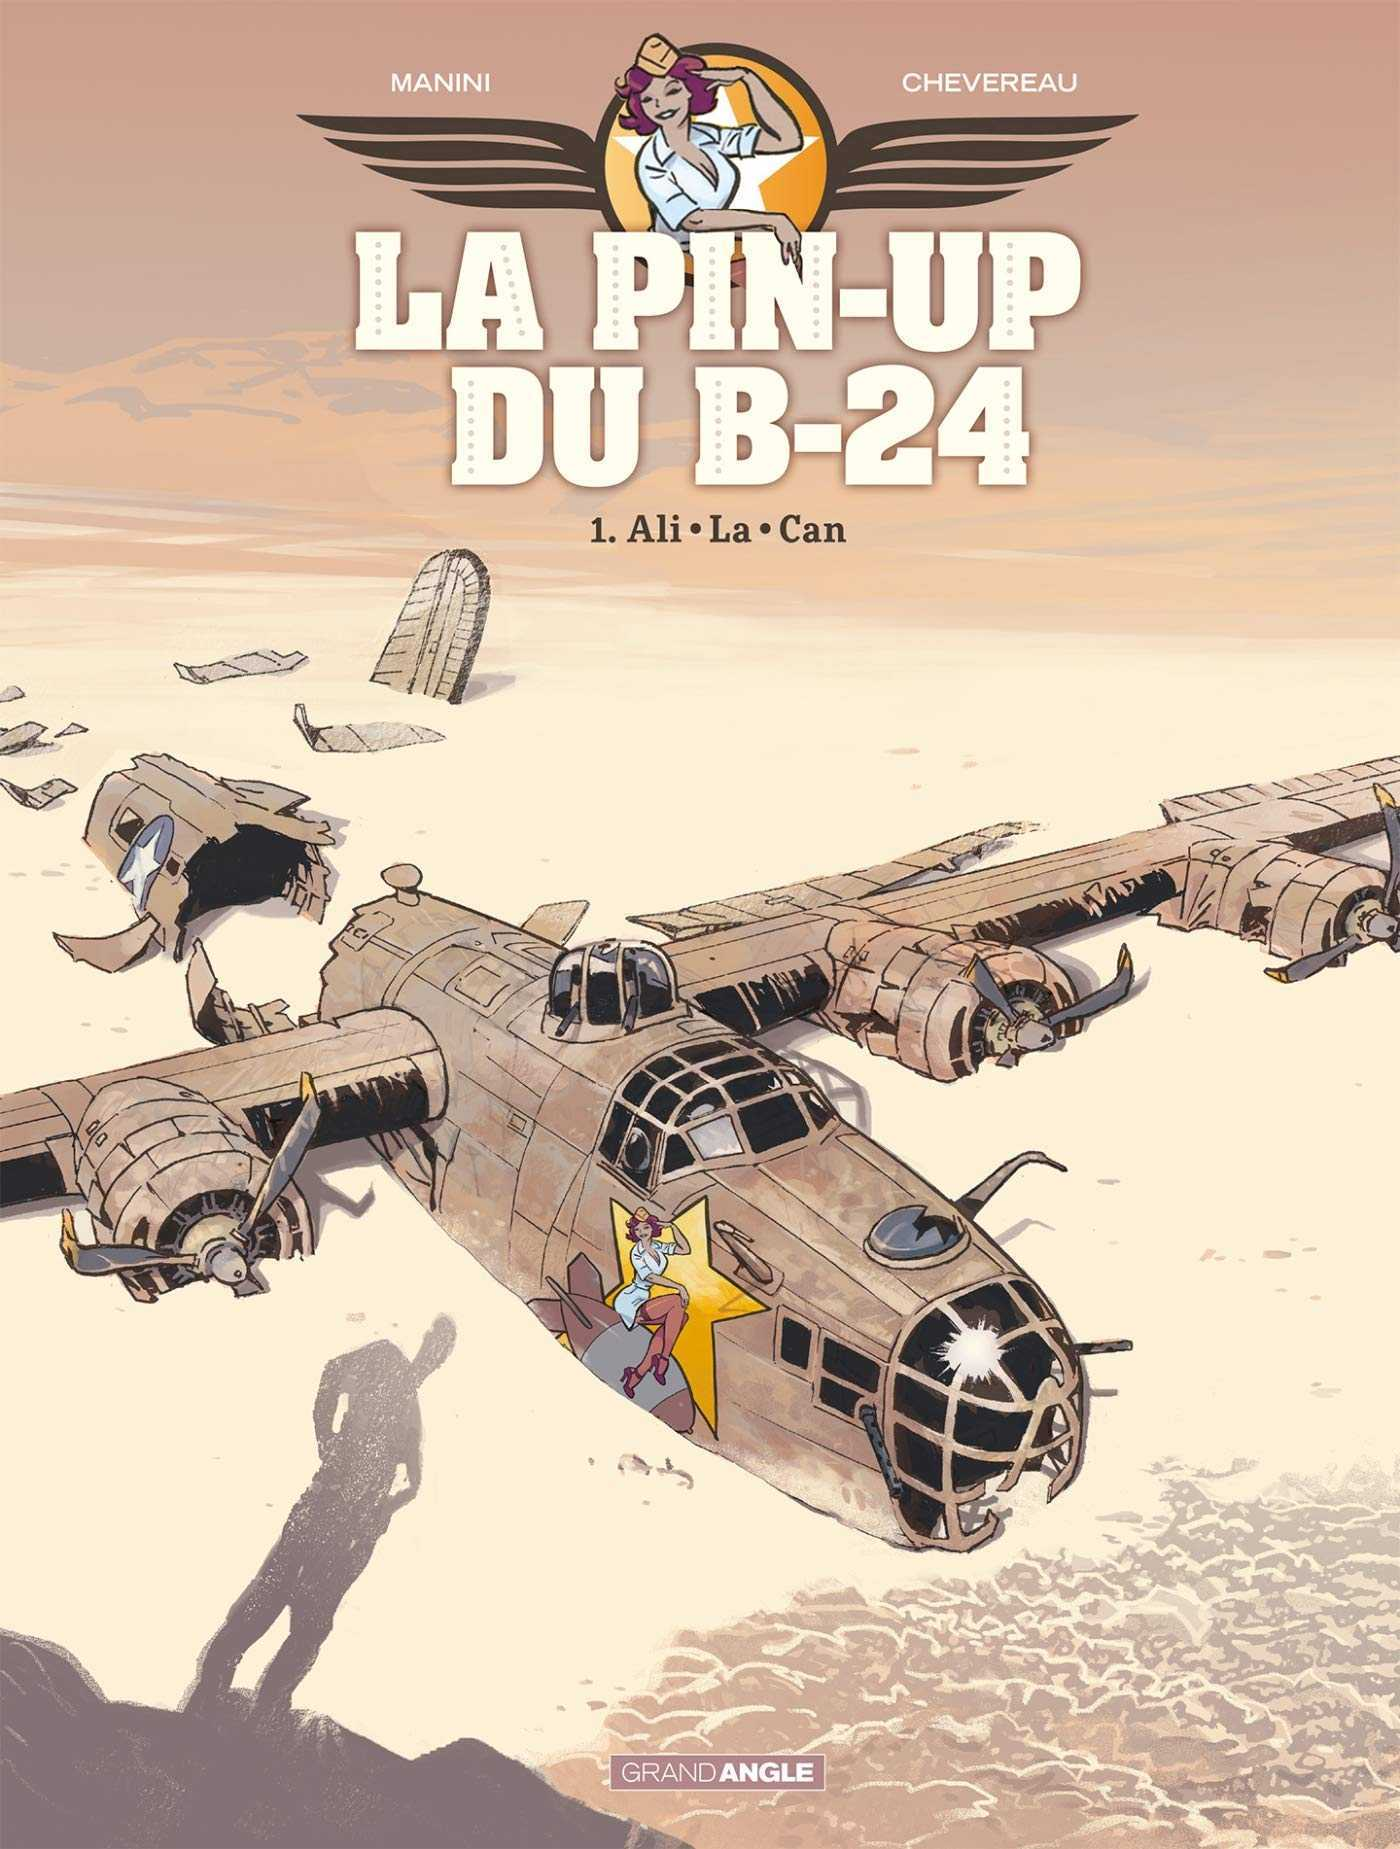 La Pin-up du B-24, Ali-La-Can la protectrice